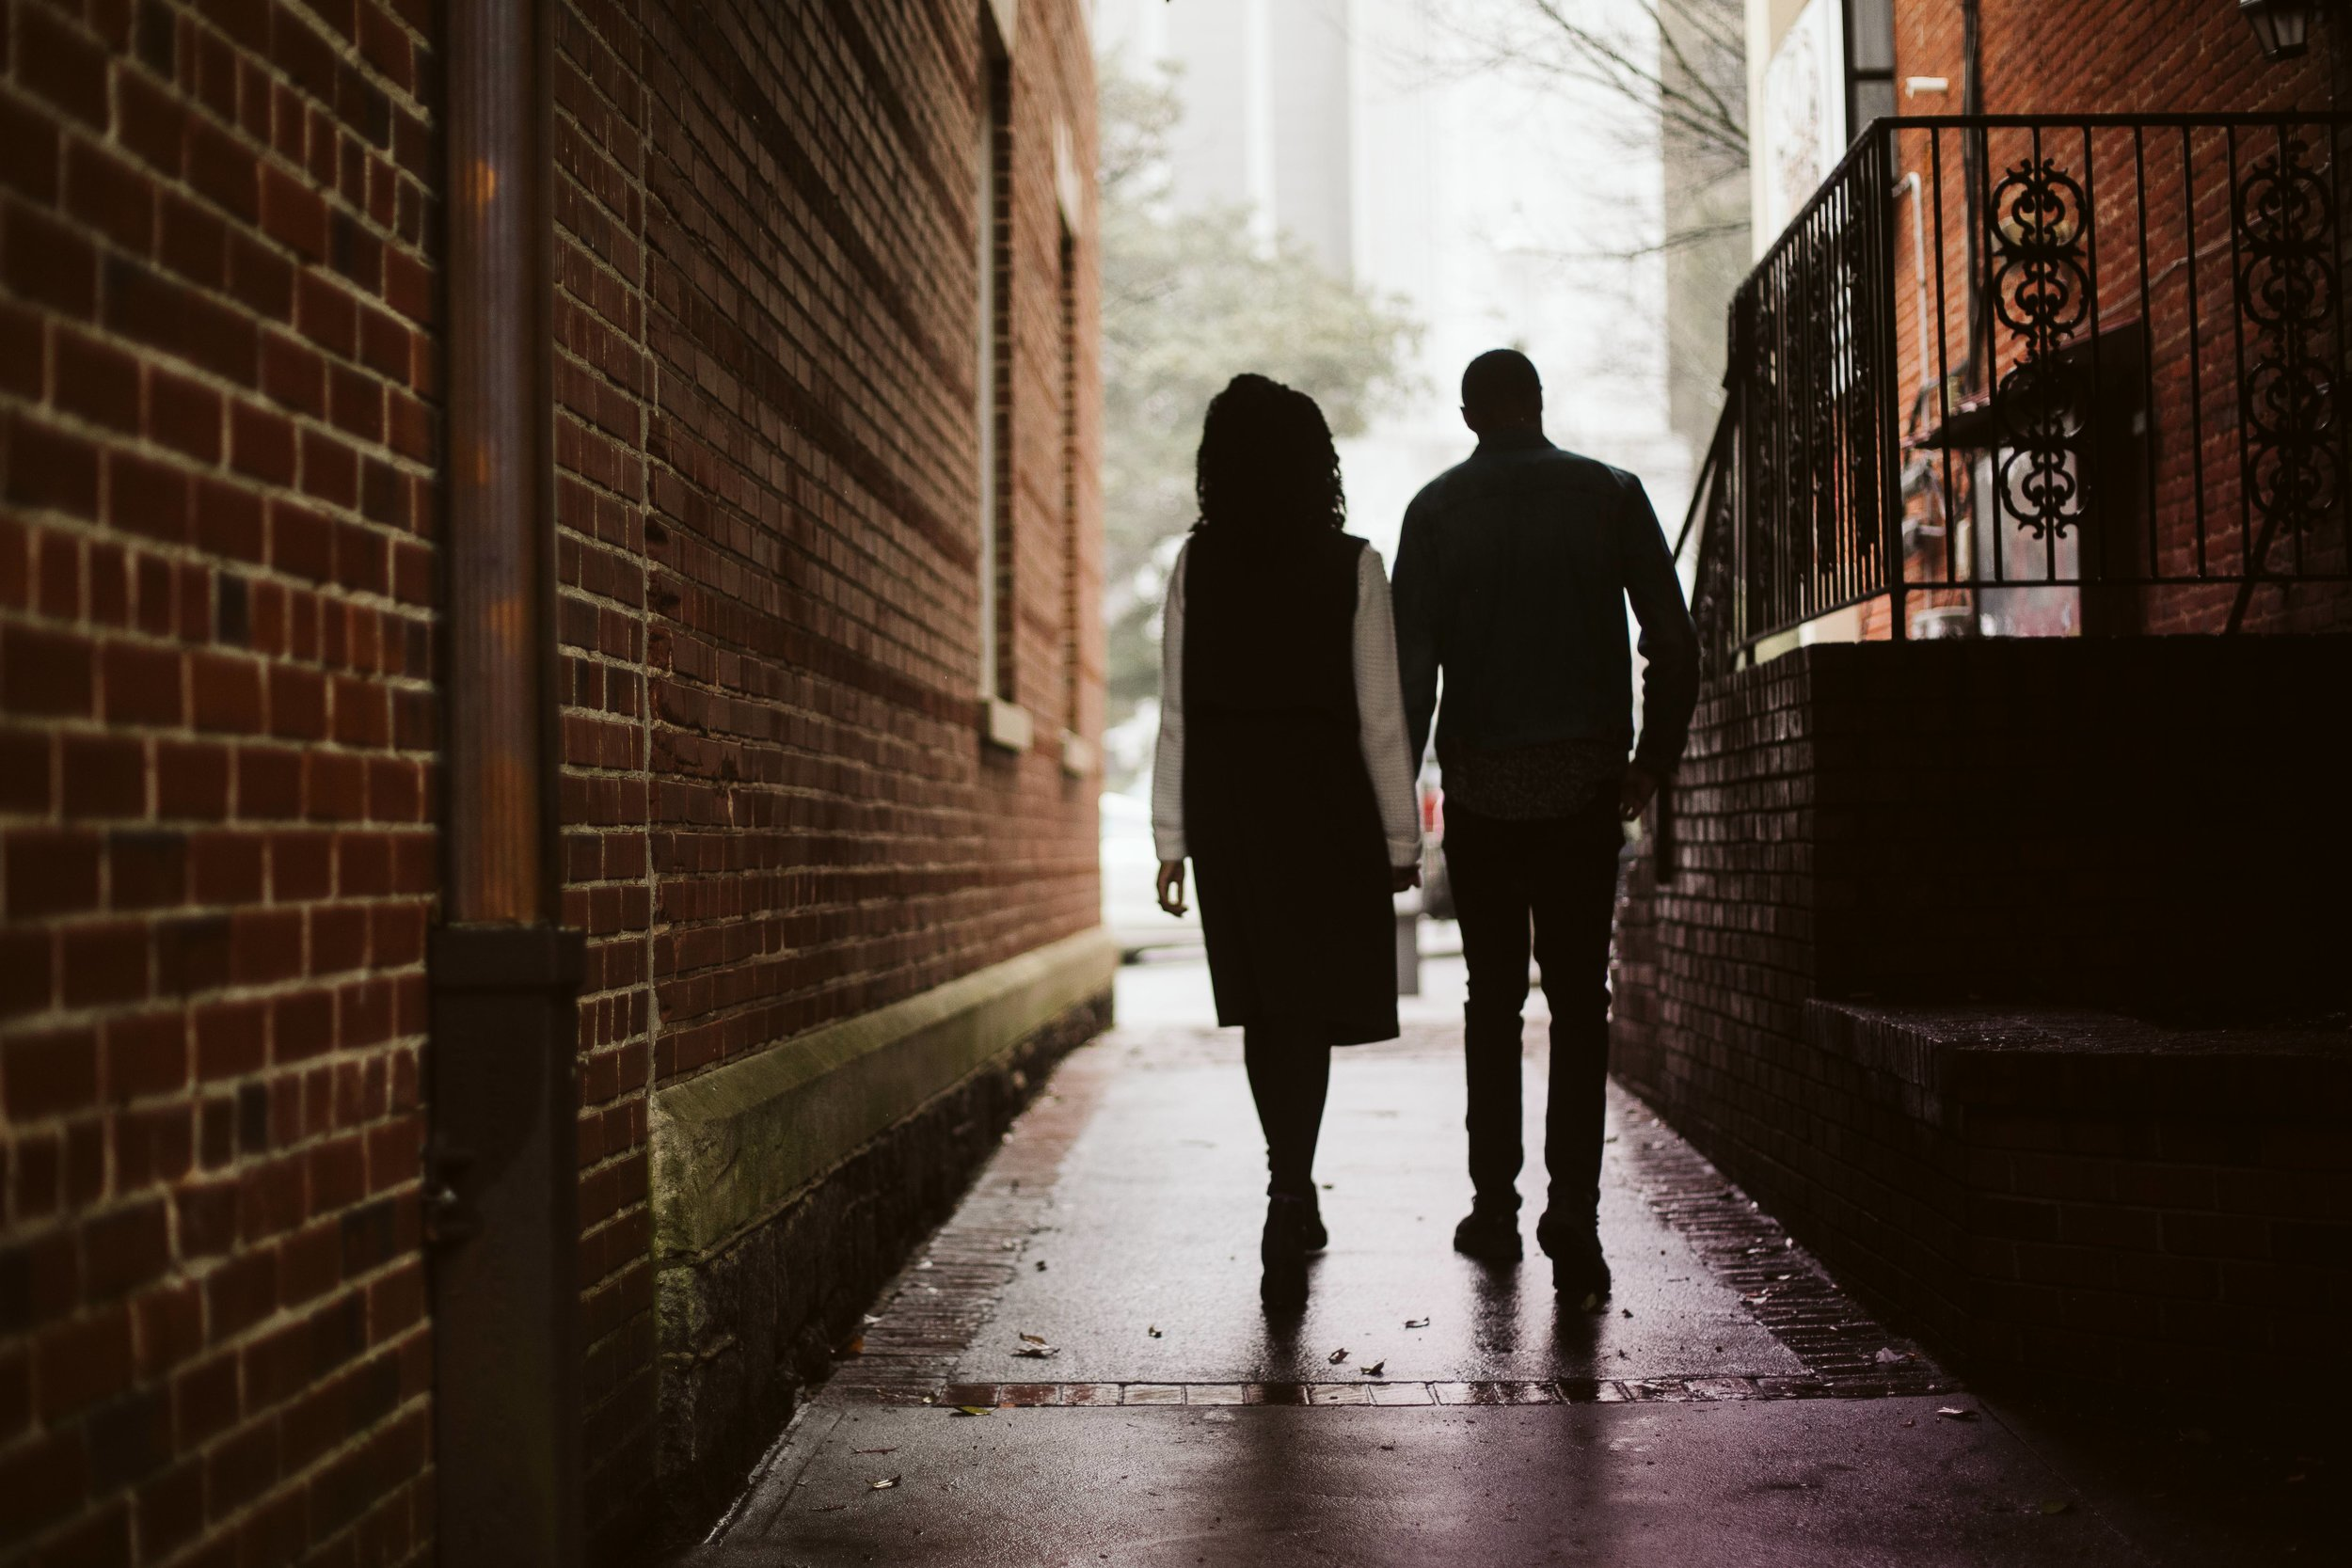 couple silhouettes by a brick wall for engagement photo